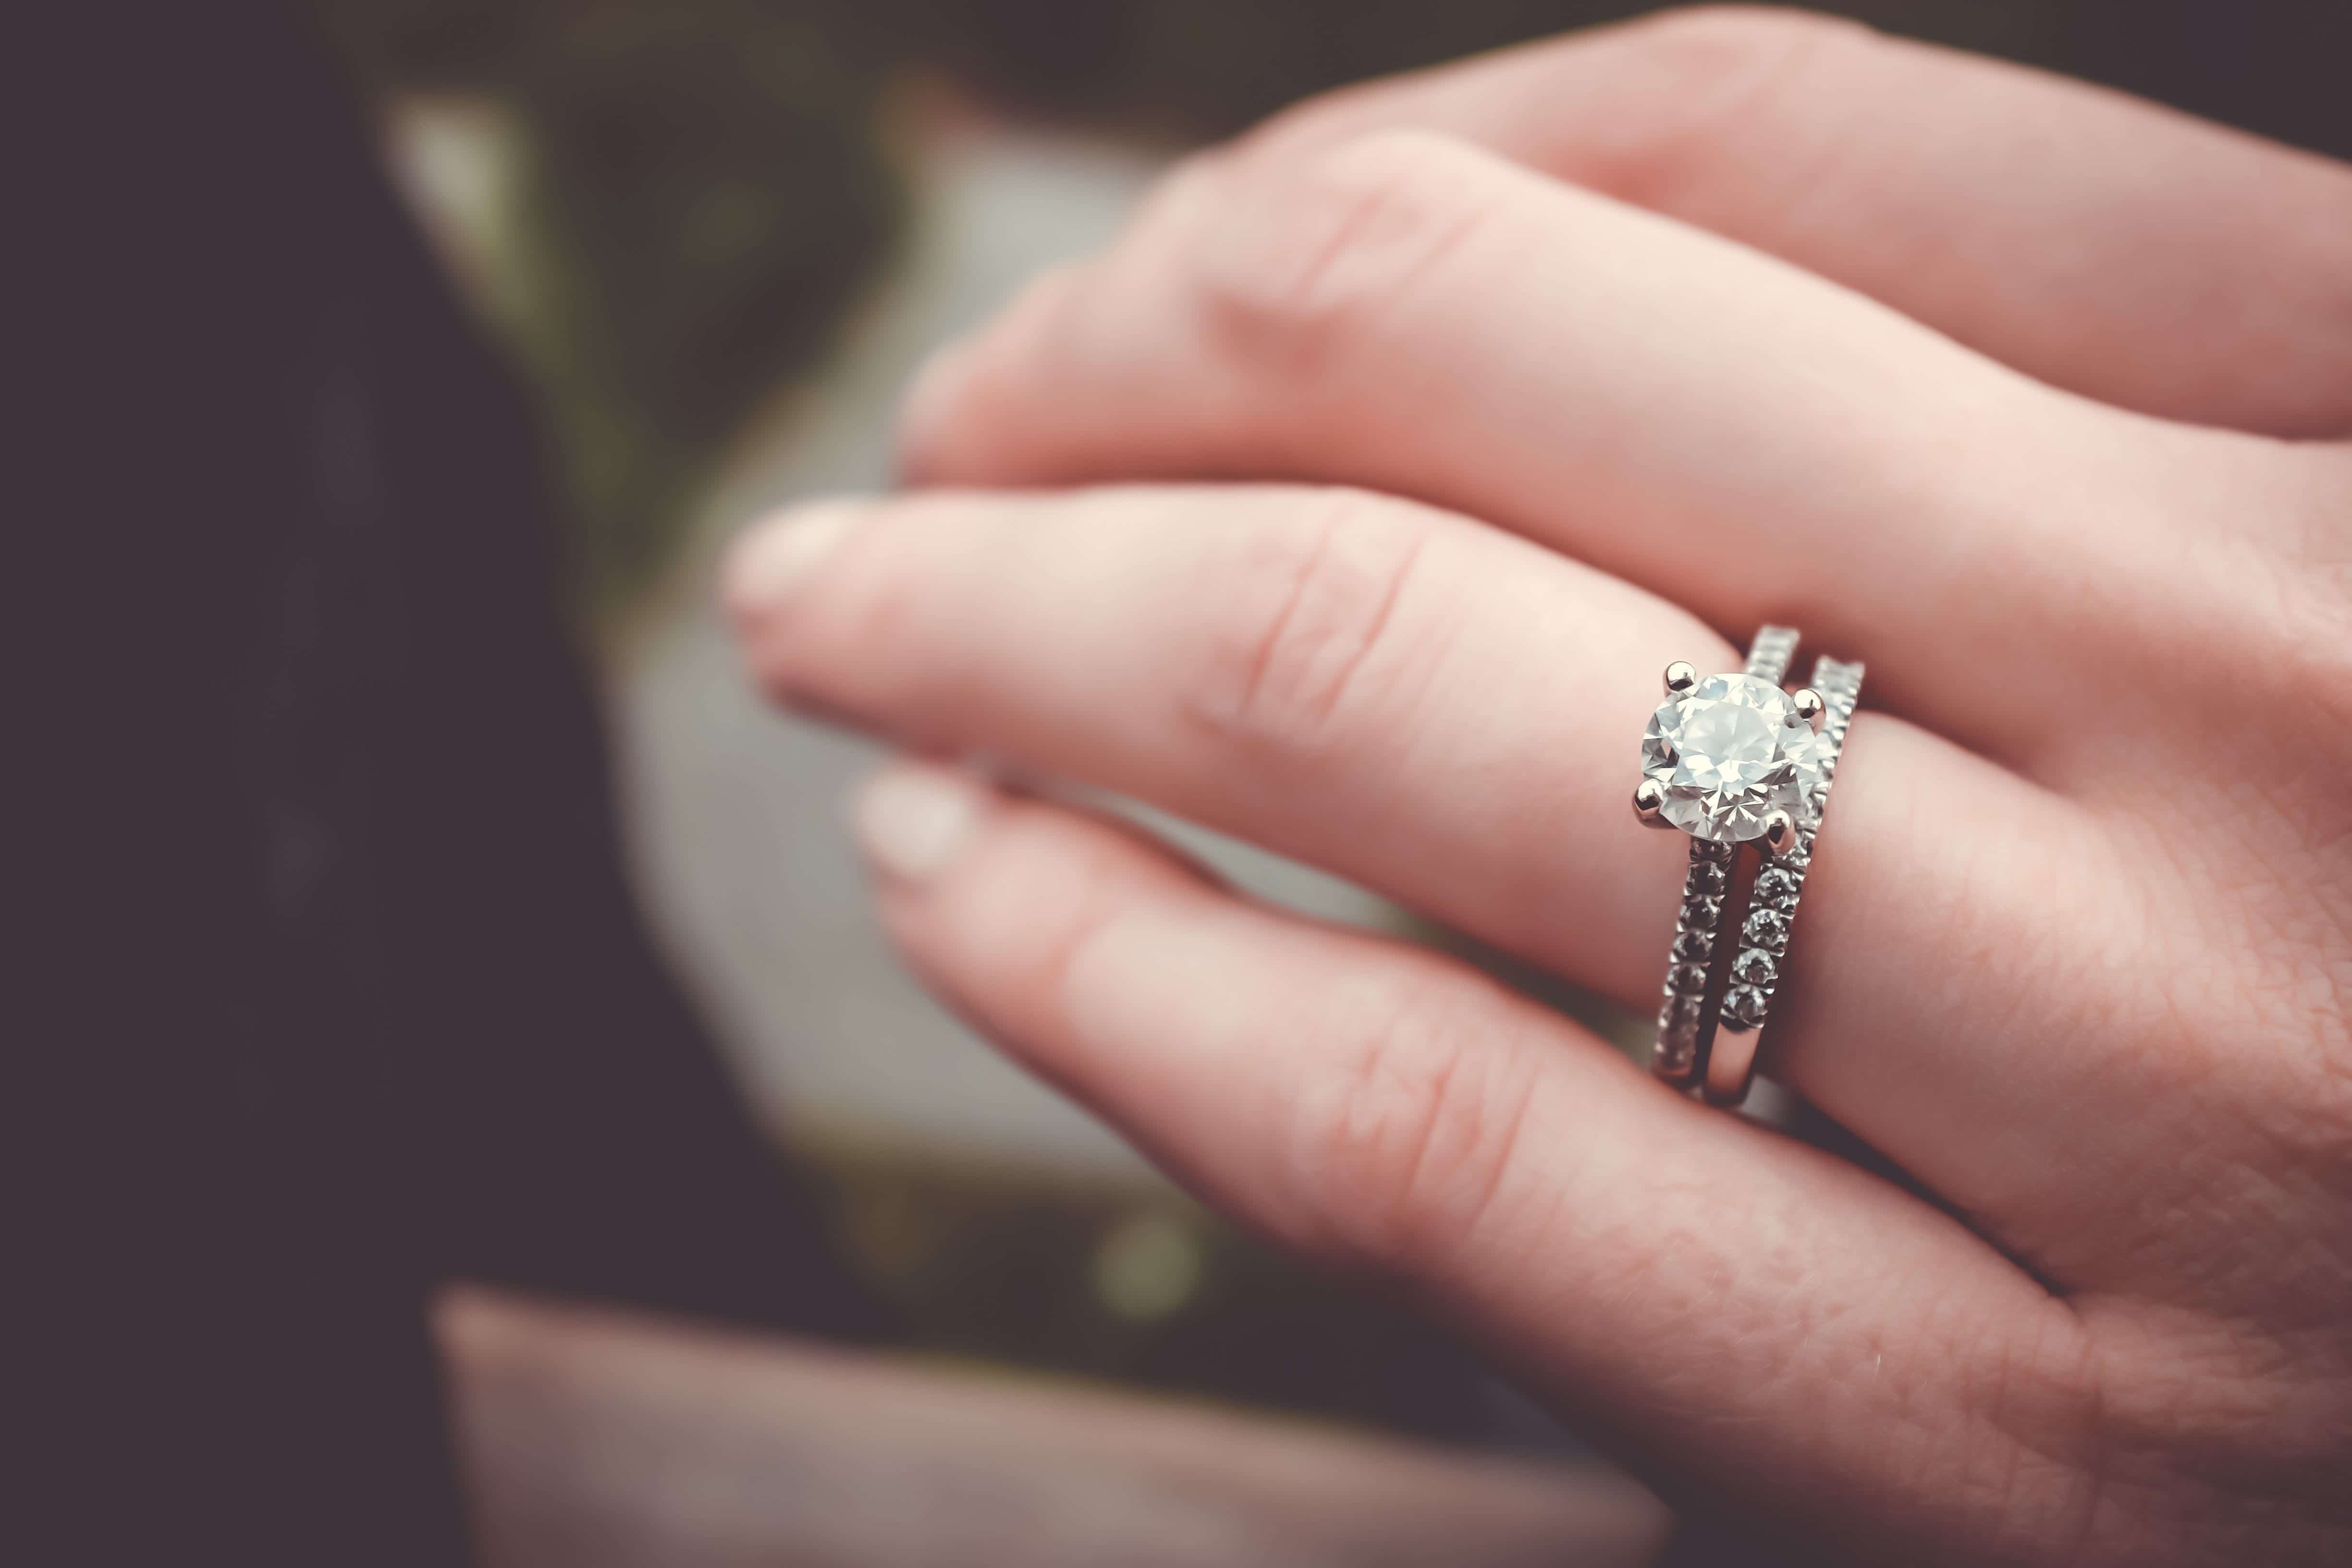 Costco Claims to Sell Tiffany Rings – A Costly Mistake